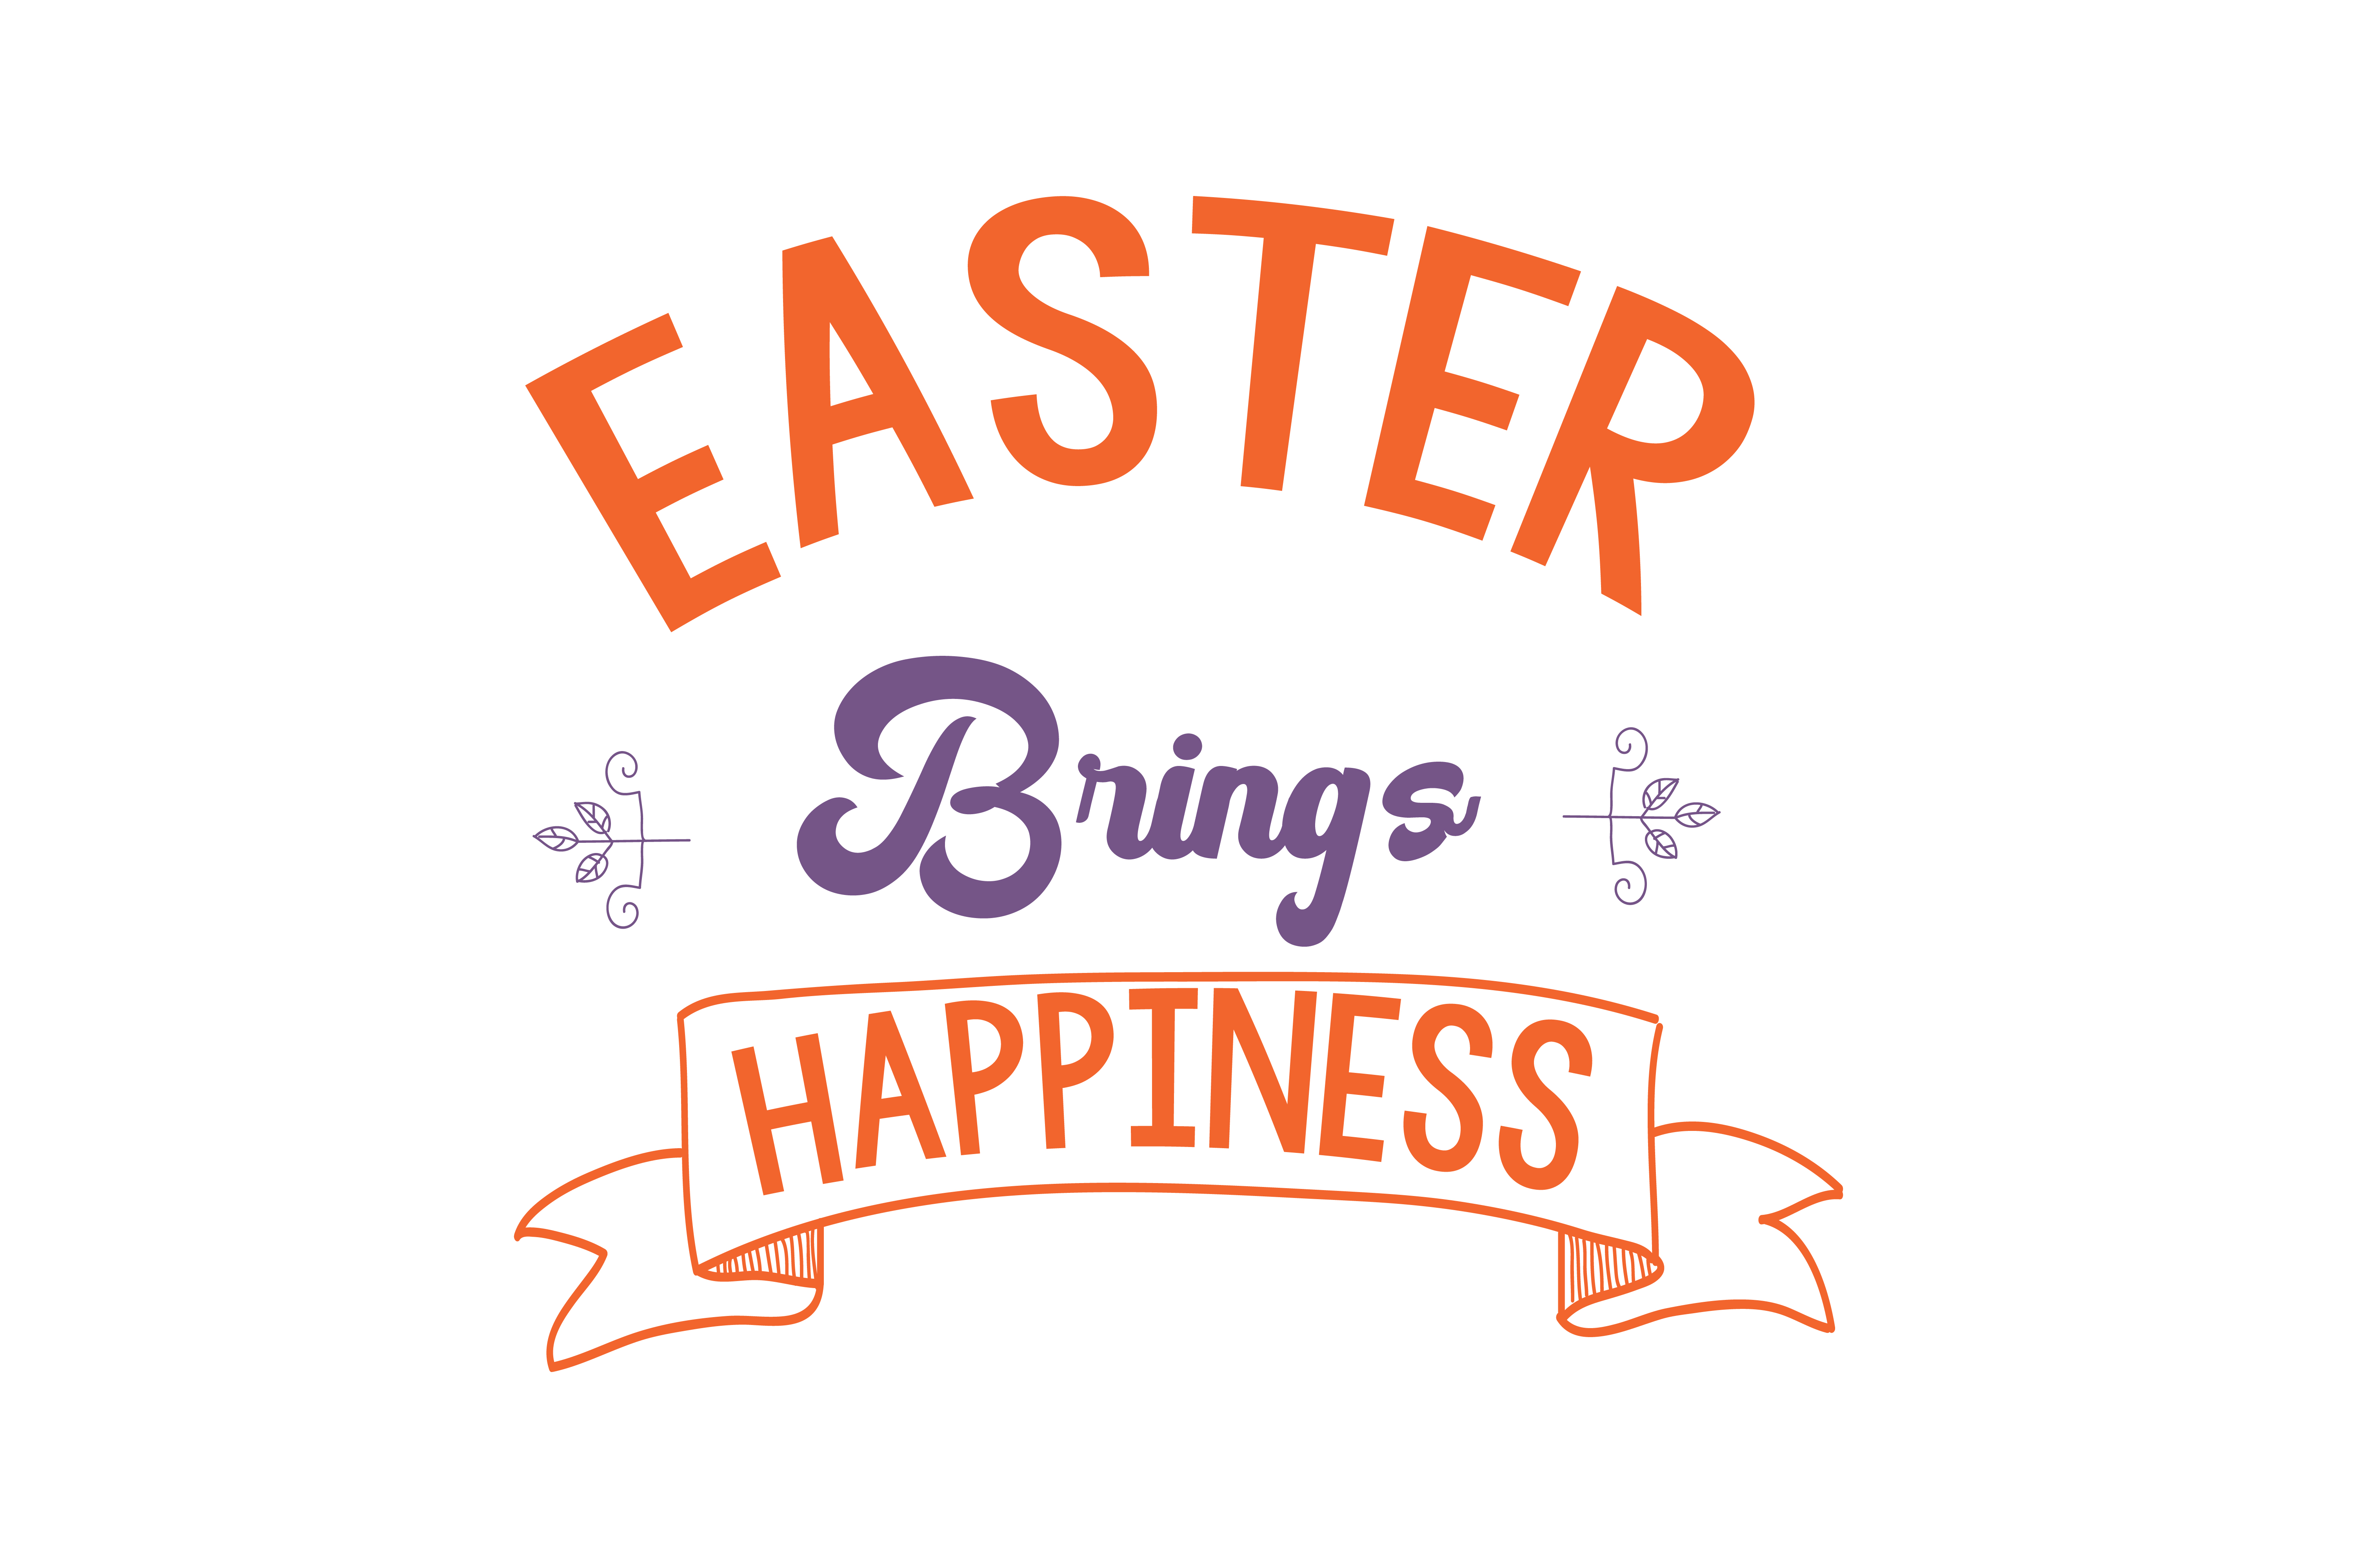 Download Free Easter Brings Happiness Quote Svg Cut Graphic By Thelucky for Cricut Explore, Silhouette and other cutting machines.